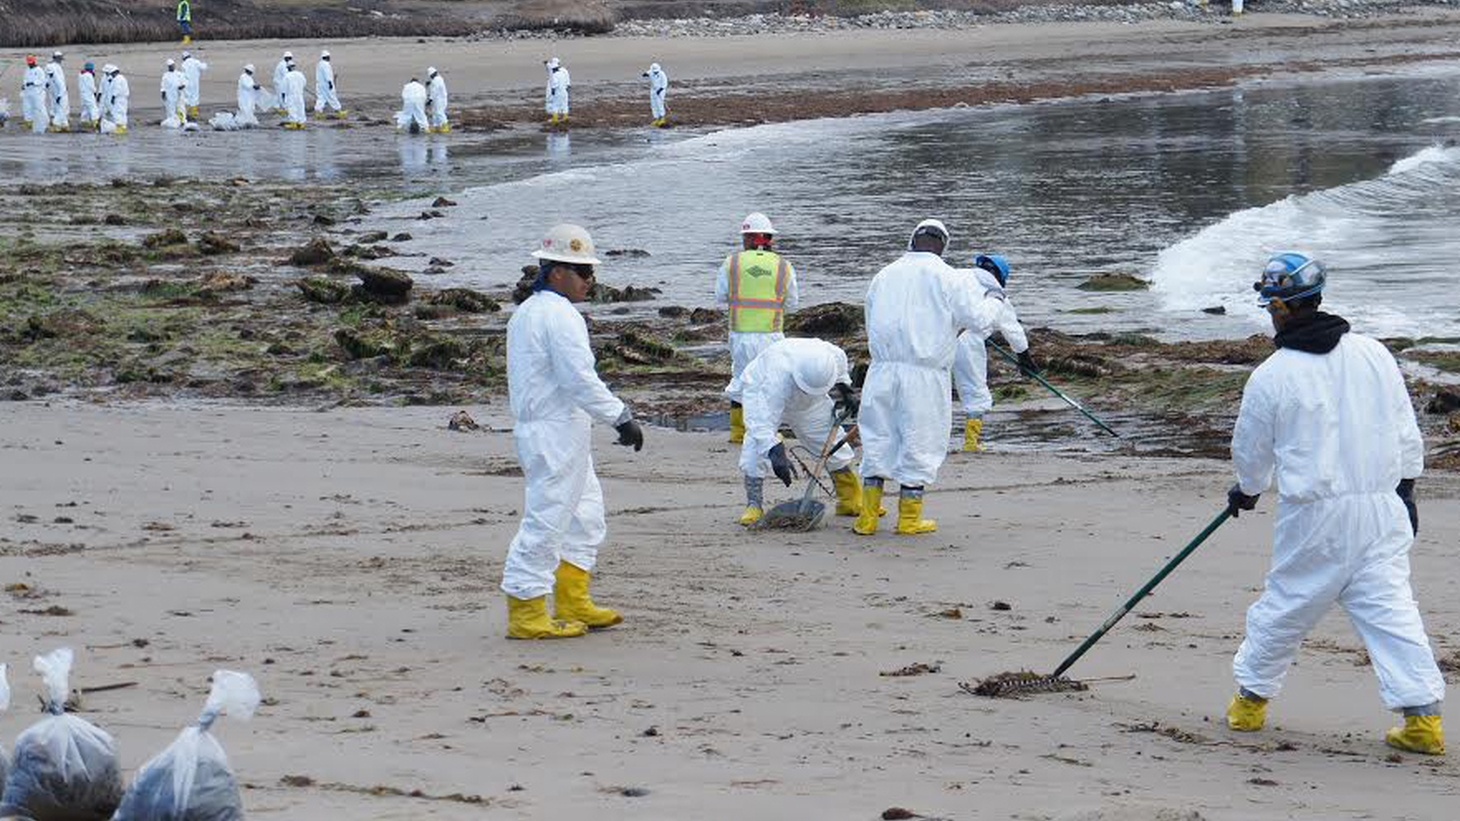 Cleaning up the Santa Barbara oil spill could take months. Spotify is expanding beyond music, while teenagers are taking over Silicon Valley. Finally, what happens when the FBI is done with its informants?